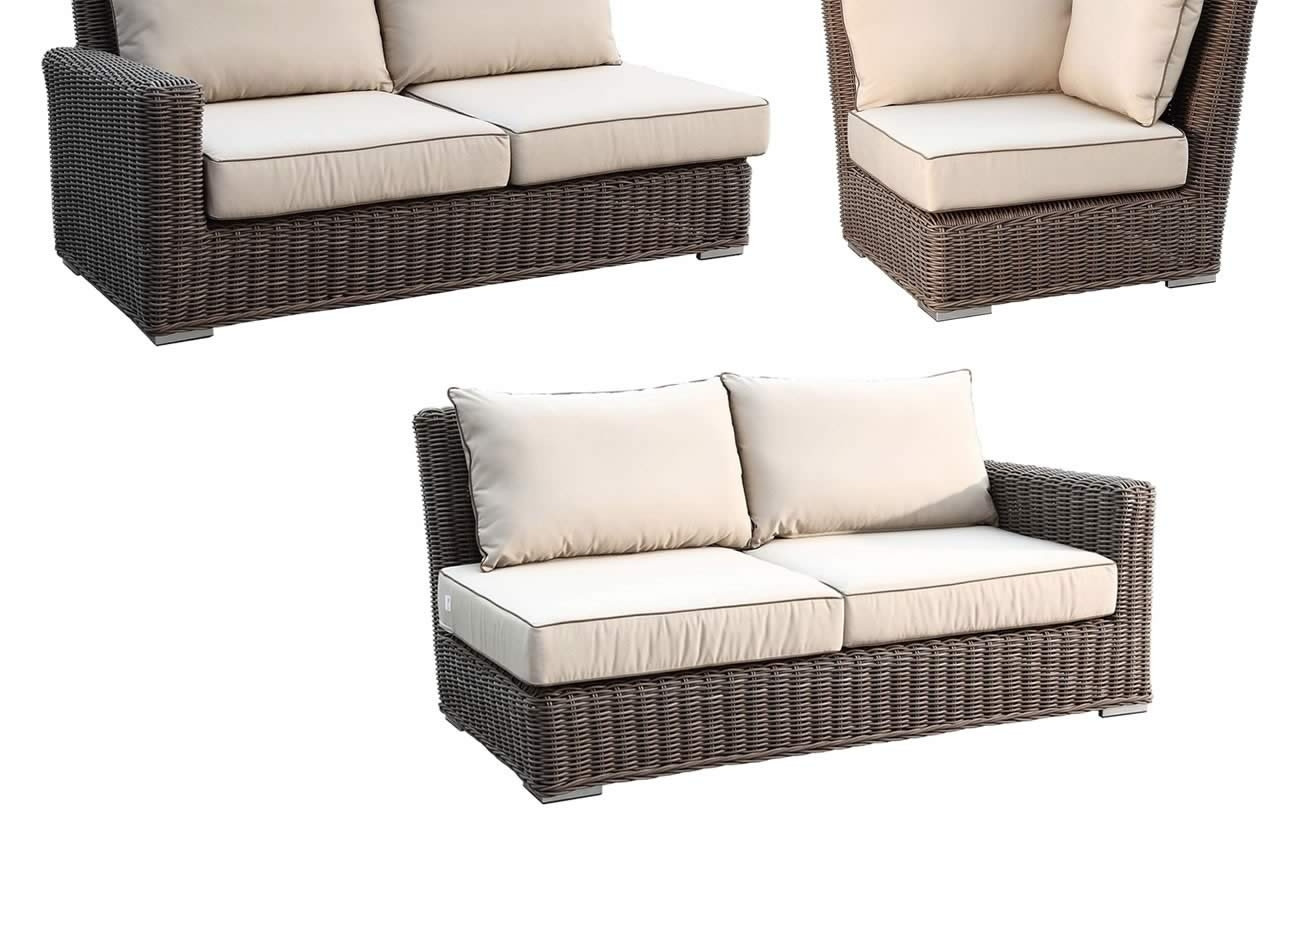 Rattan Corner Sofa Replacement Cushions Sunset West Coronado 3 Piece Wicker Sectional Set Replacement Cushion